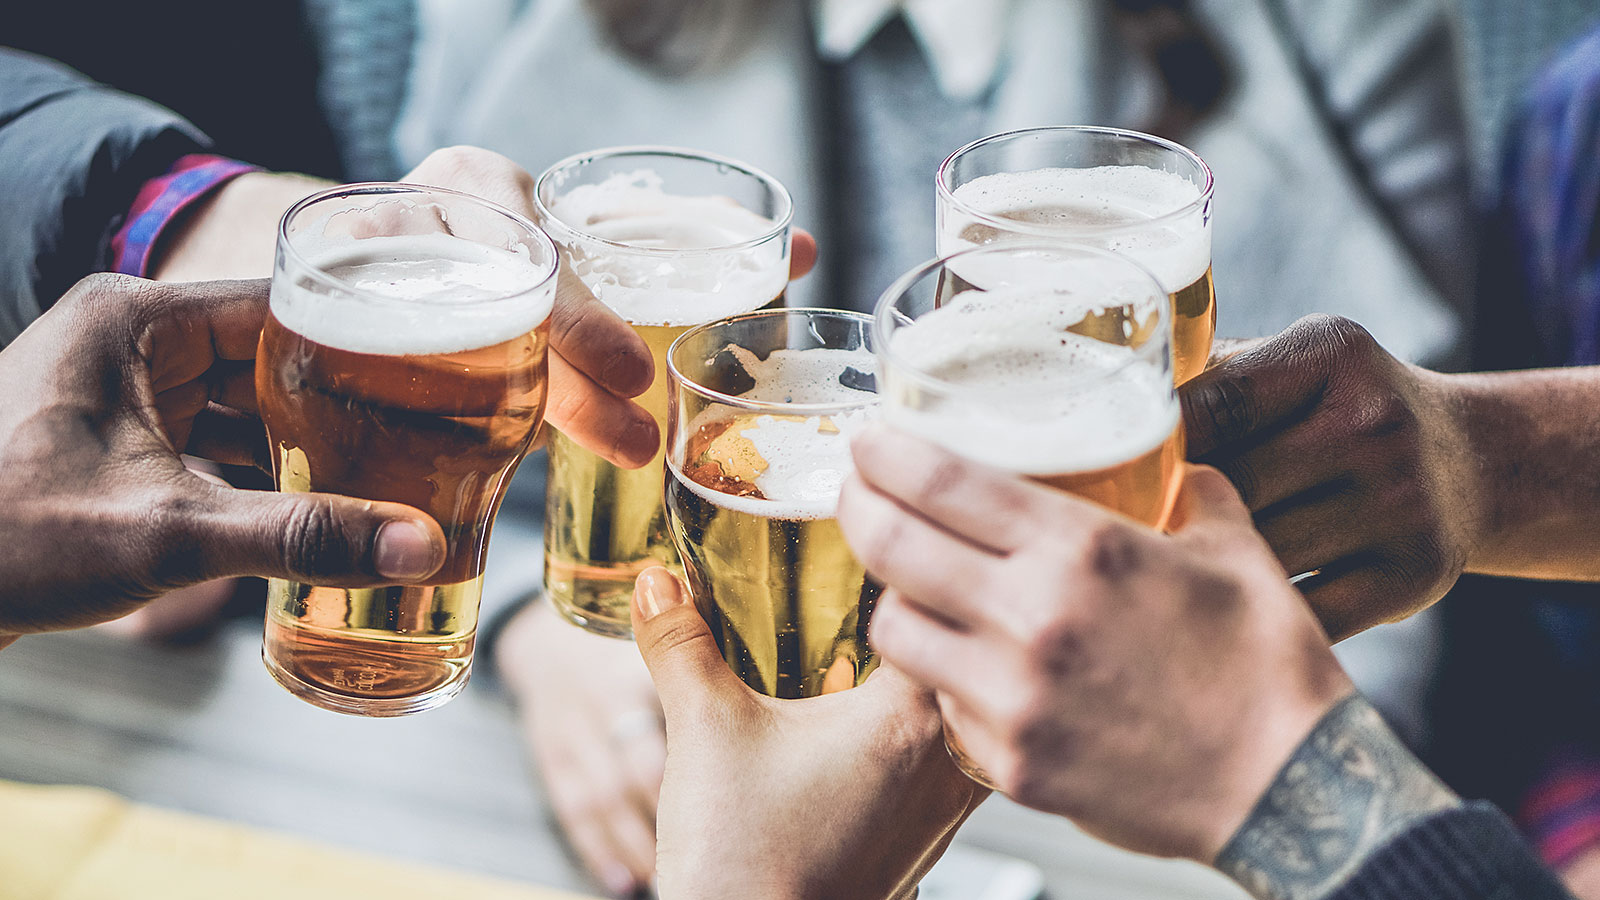 Drinking regularly can lead to major heart problems says new study